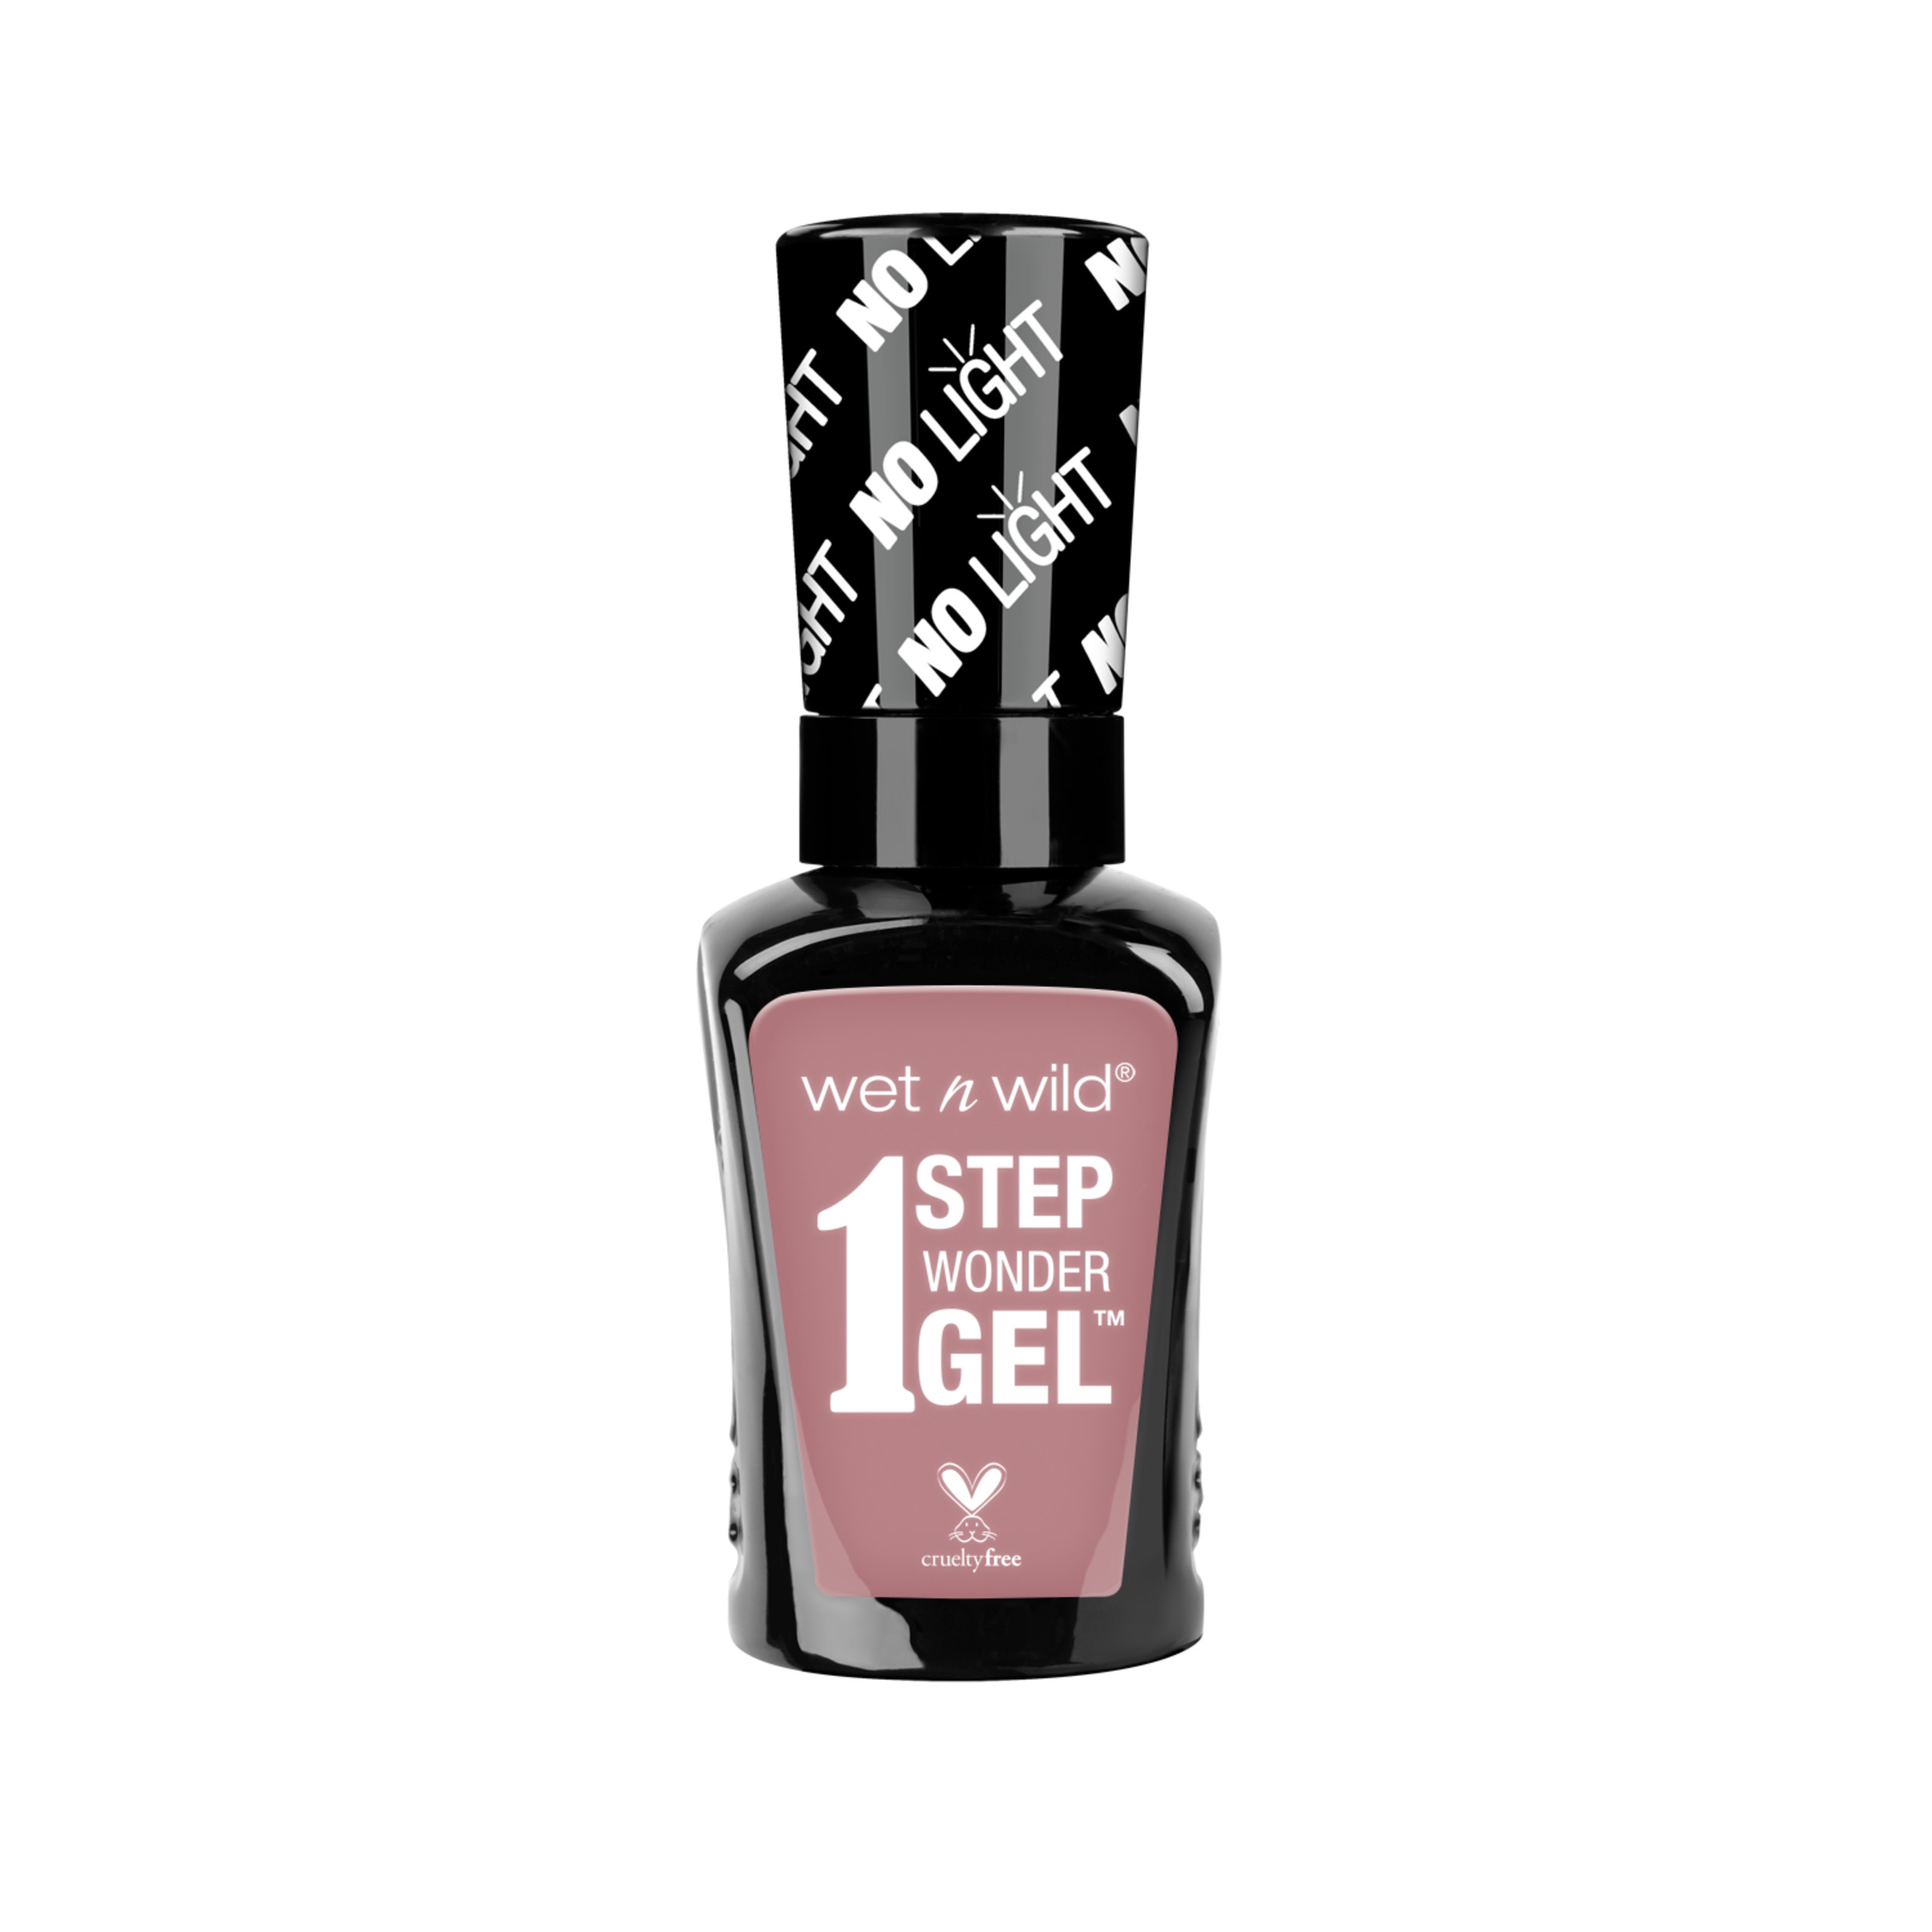 wet n wild 1 Step Wonder Gel Nail Color, Stay Classy